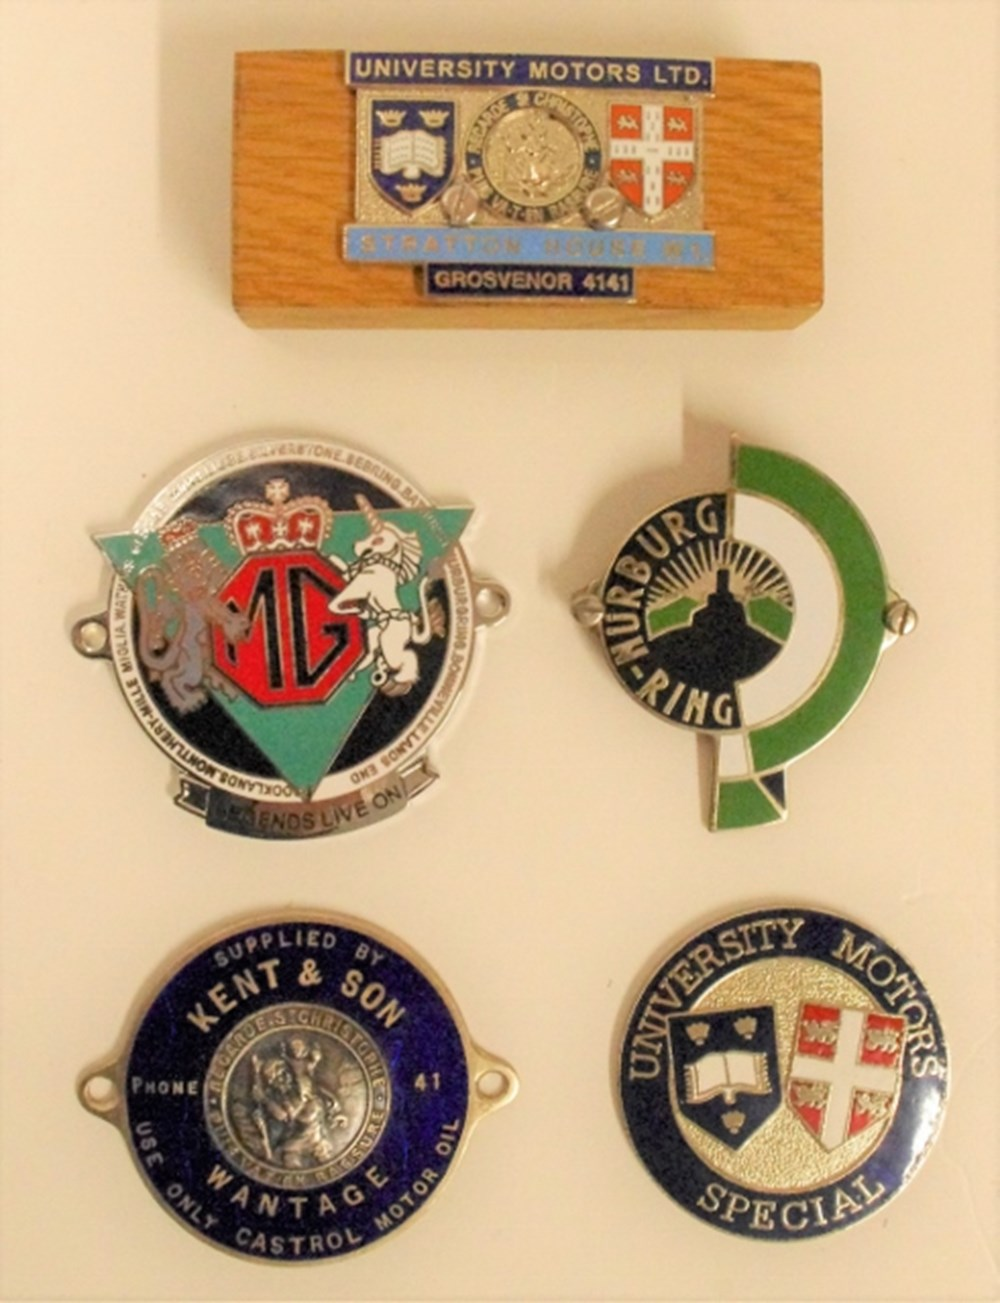 Lot 31. - Dashboard plaques.